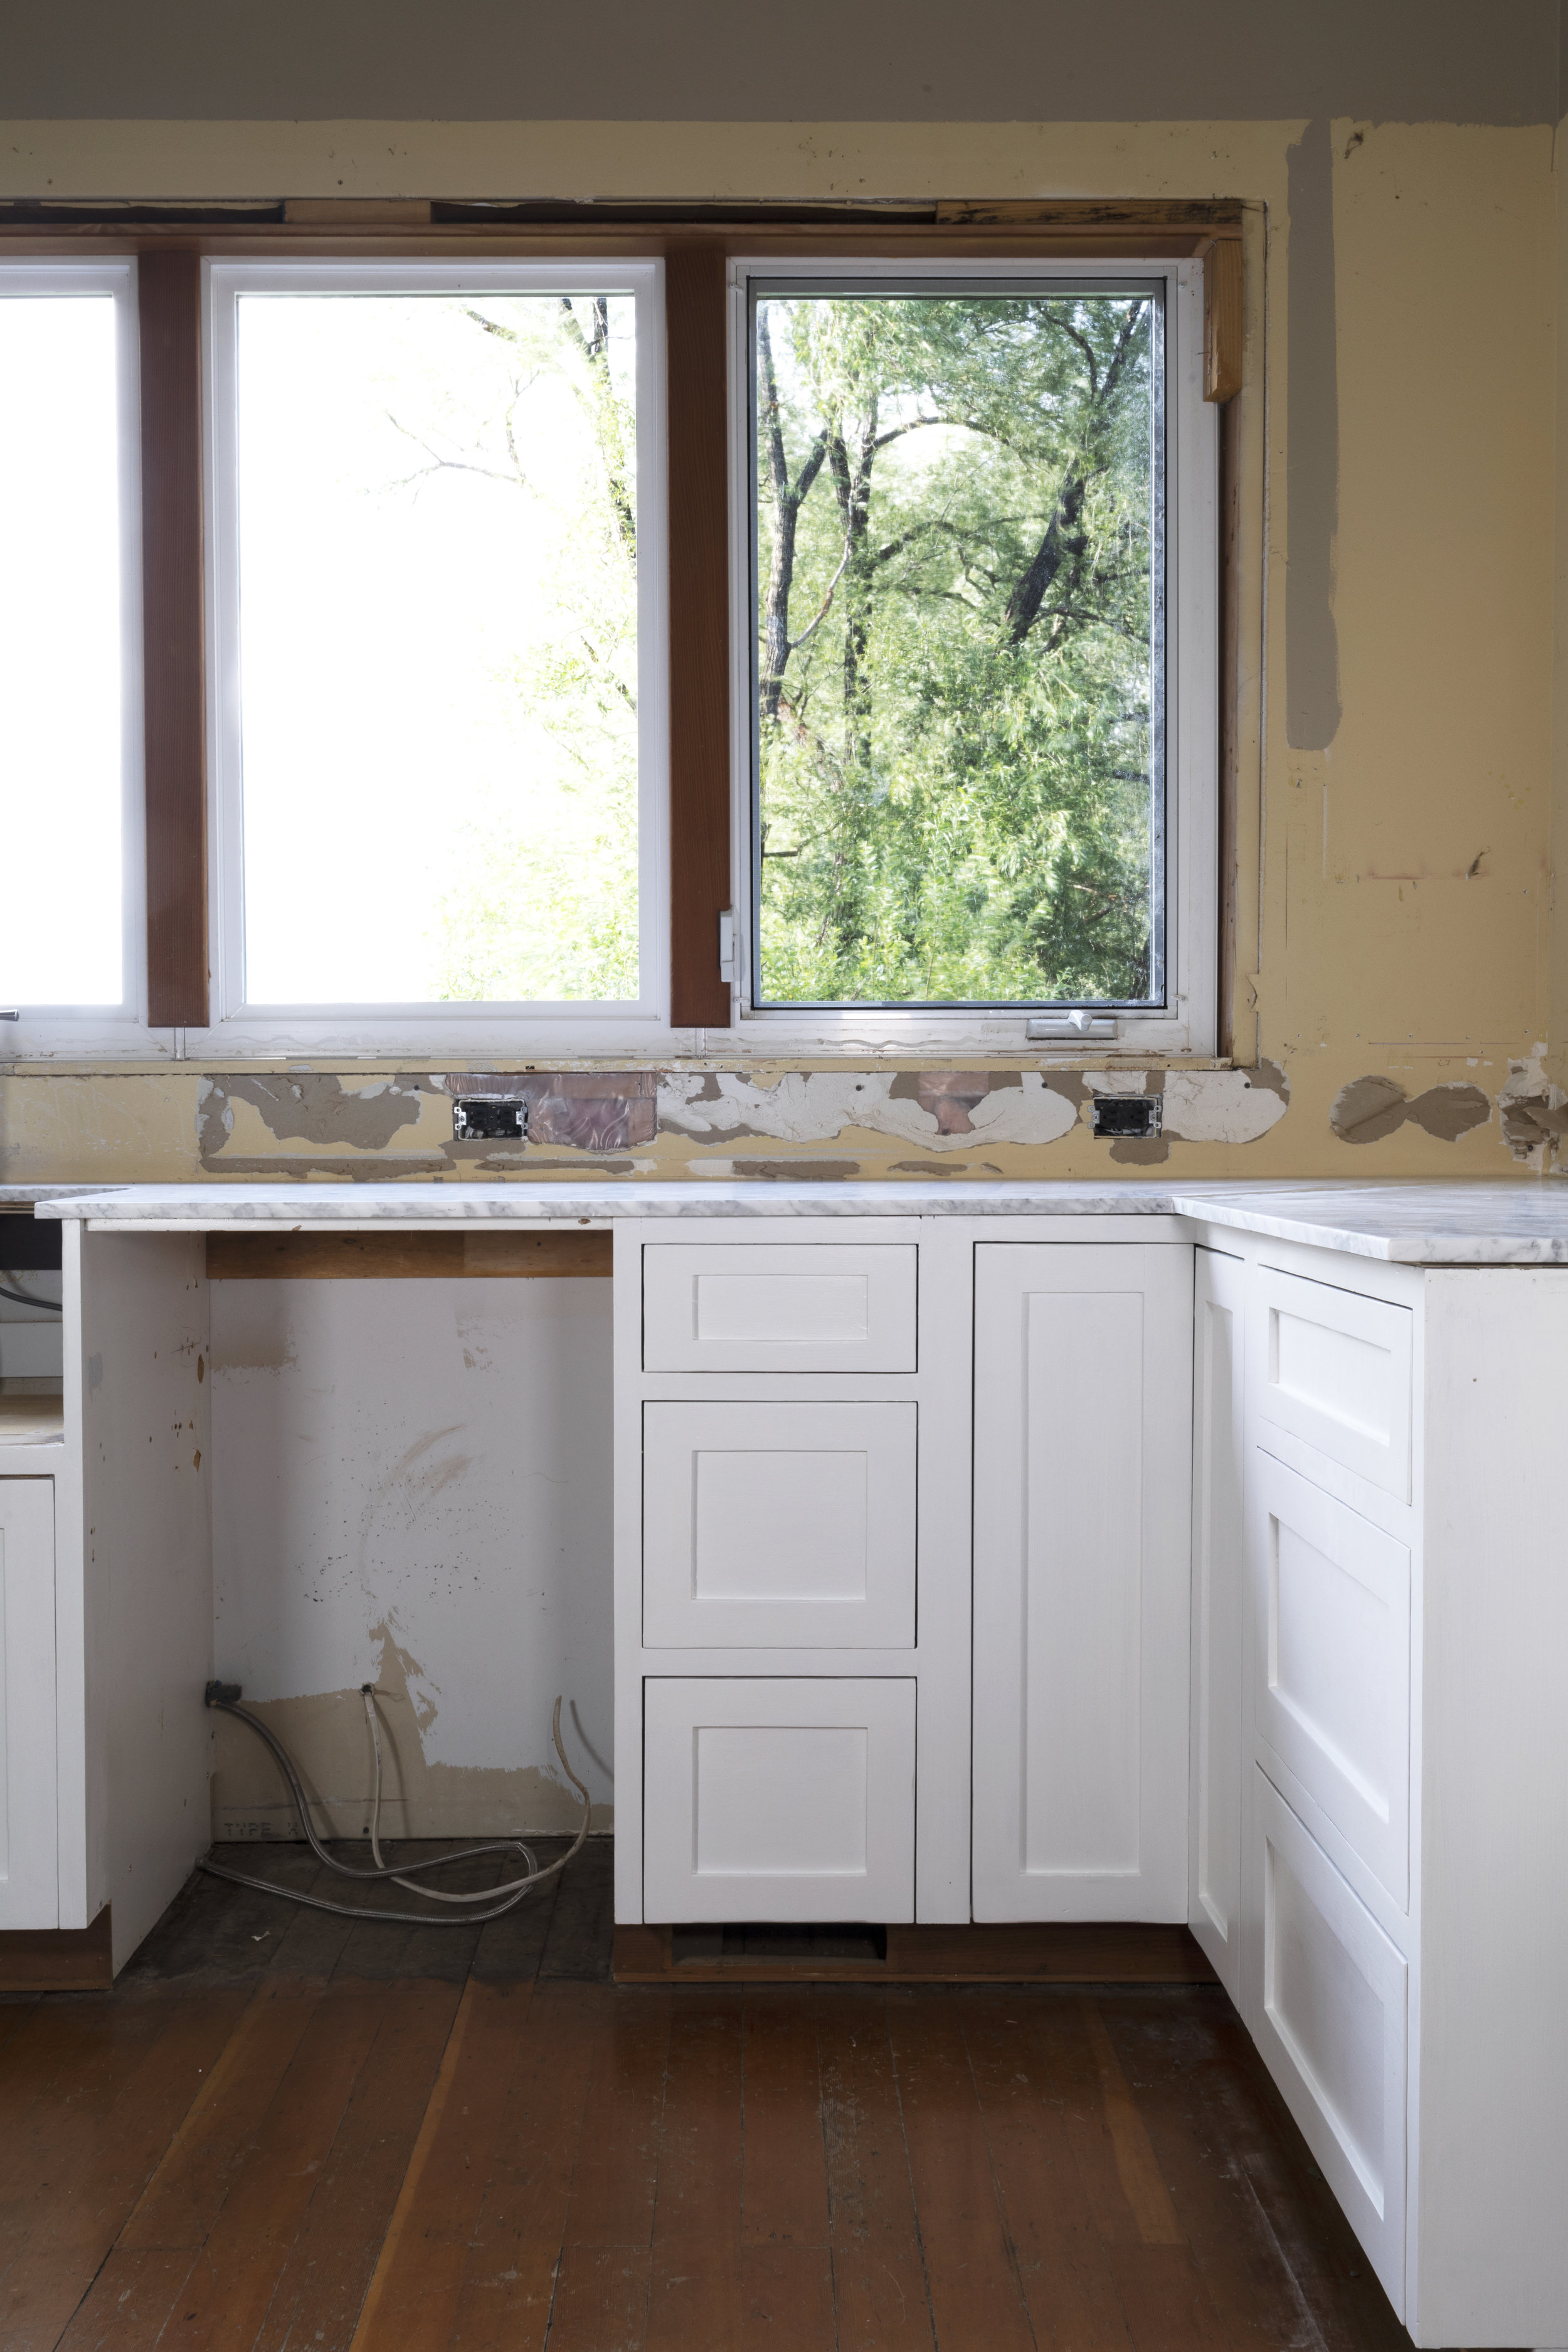 The Grit and Polish - Farmhouse Kitchen 7-4-19 Update 22.jpg